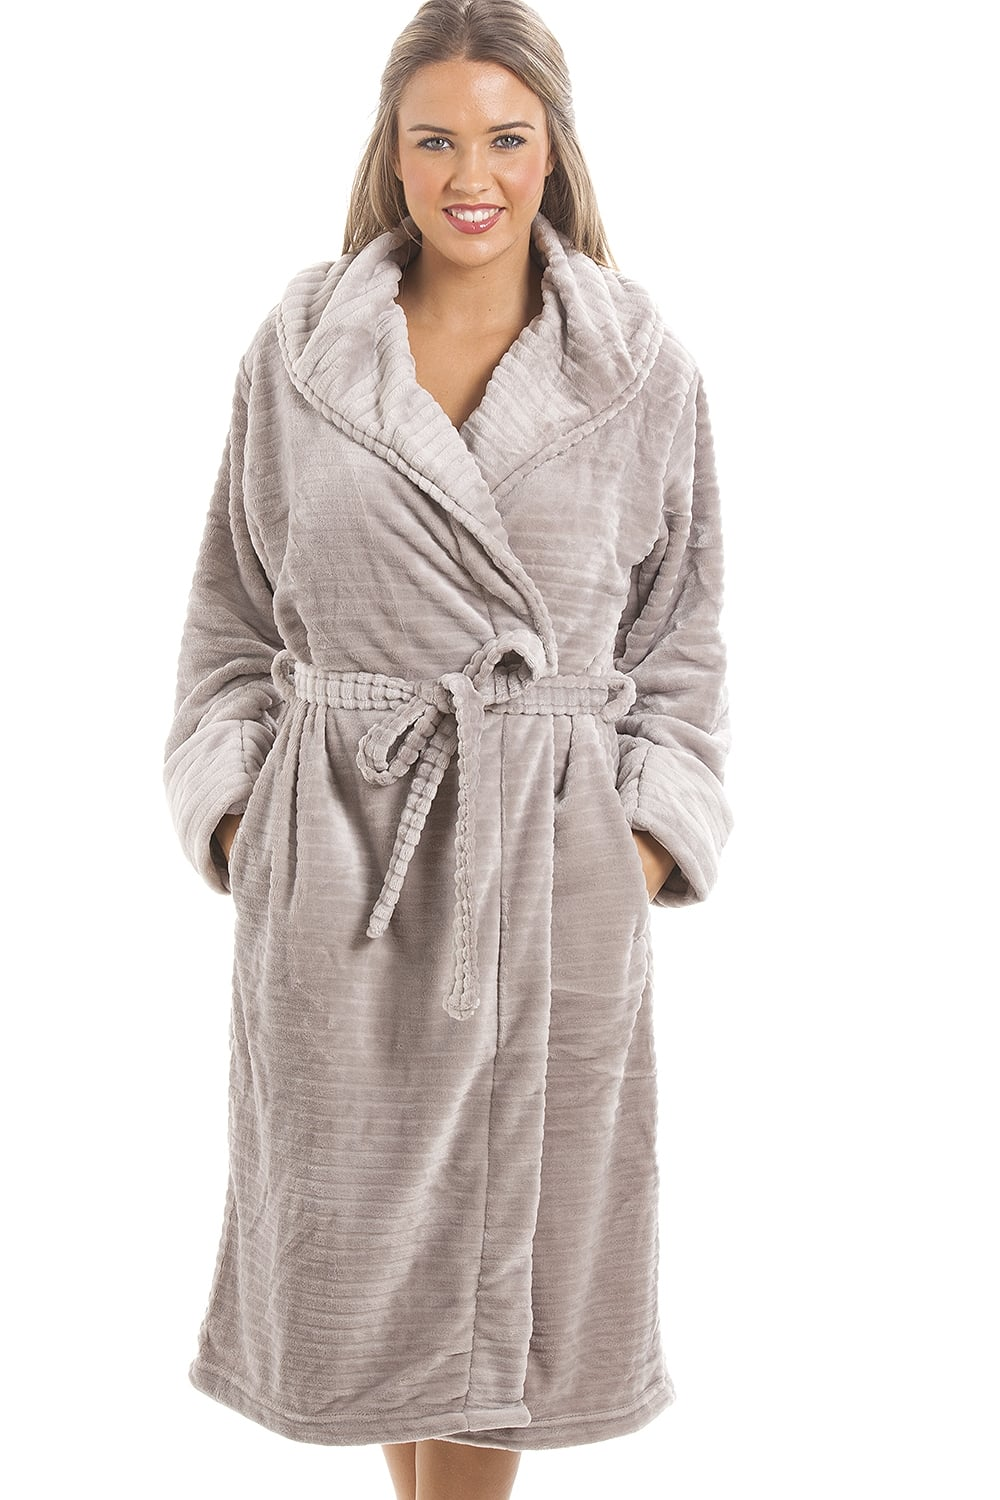 Camille Super Soft Fleece Grey Dressing gown c1e548f8d